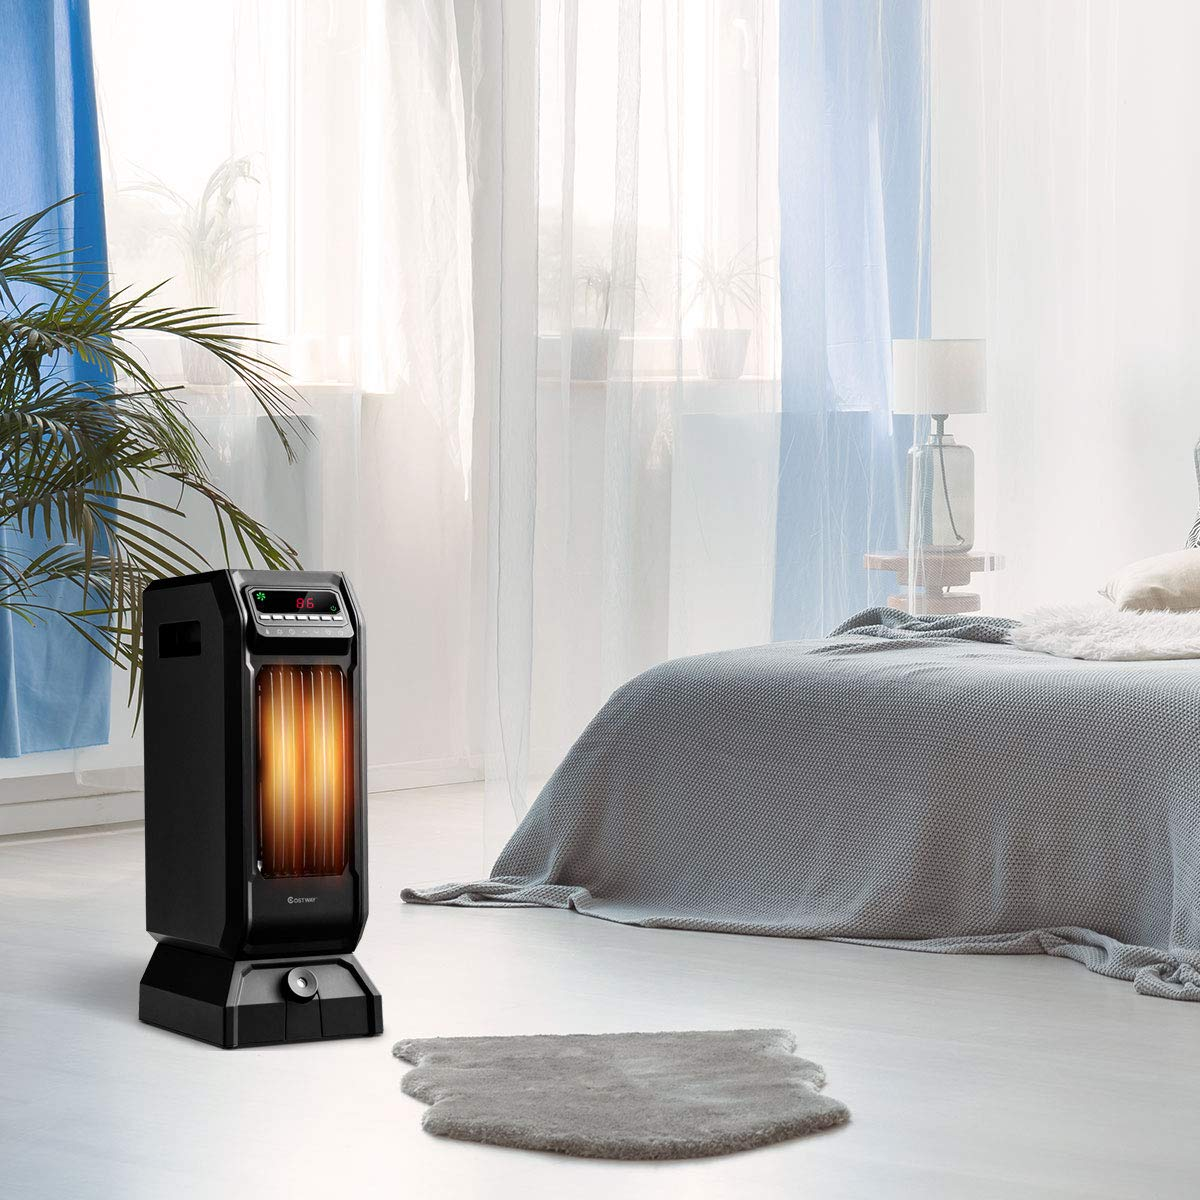 COSTWAY Electric Space Heater, Portable Infrared Quartz Heater, Digital Ceramic Heater with Remote, Digital Thermostat, 12H Timer, 1500 or 750 Watt Quiet and Fast Heating for Home and Office